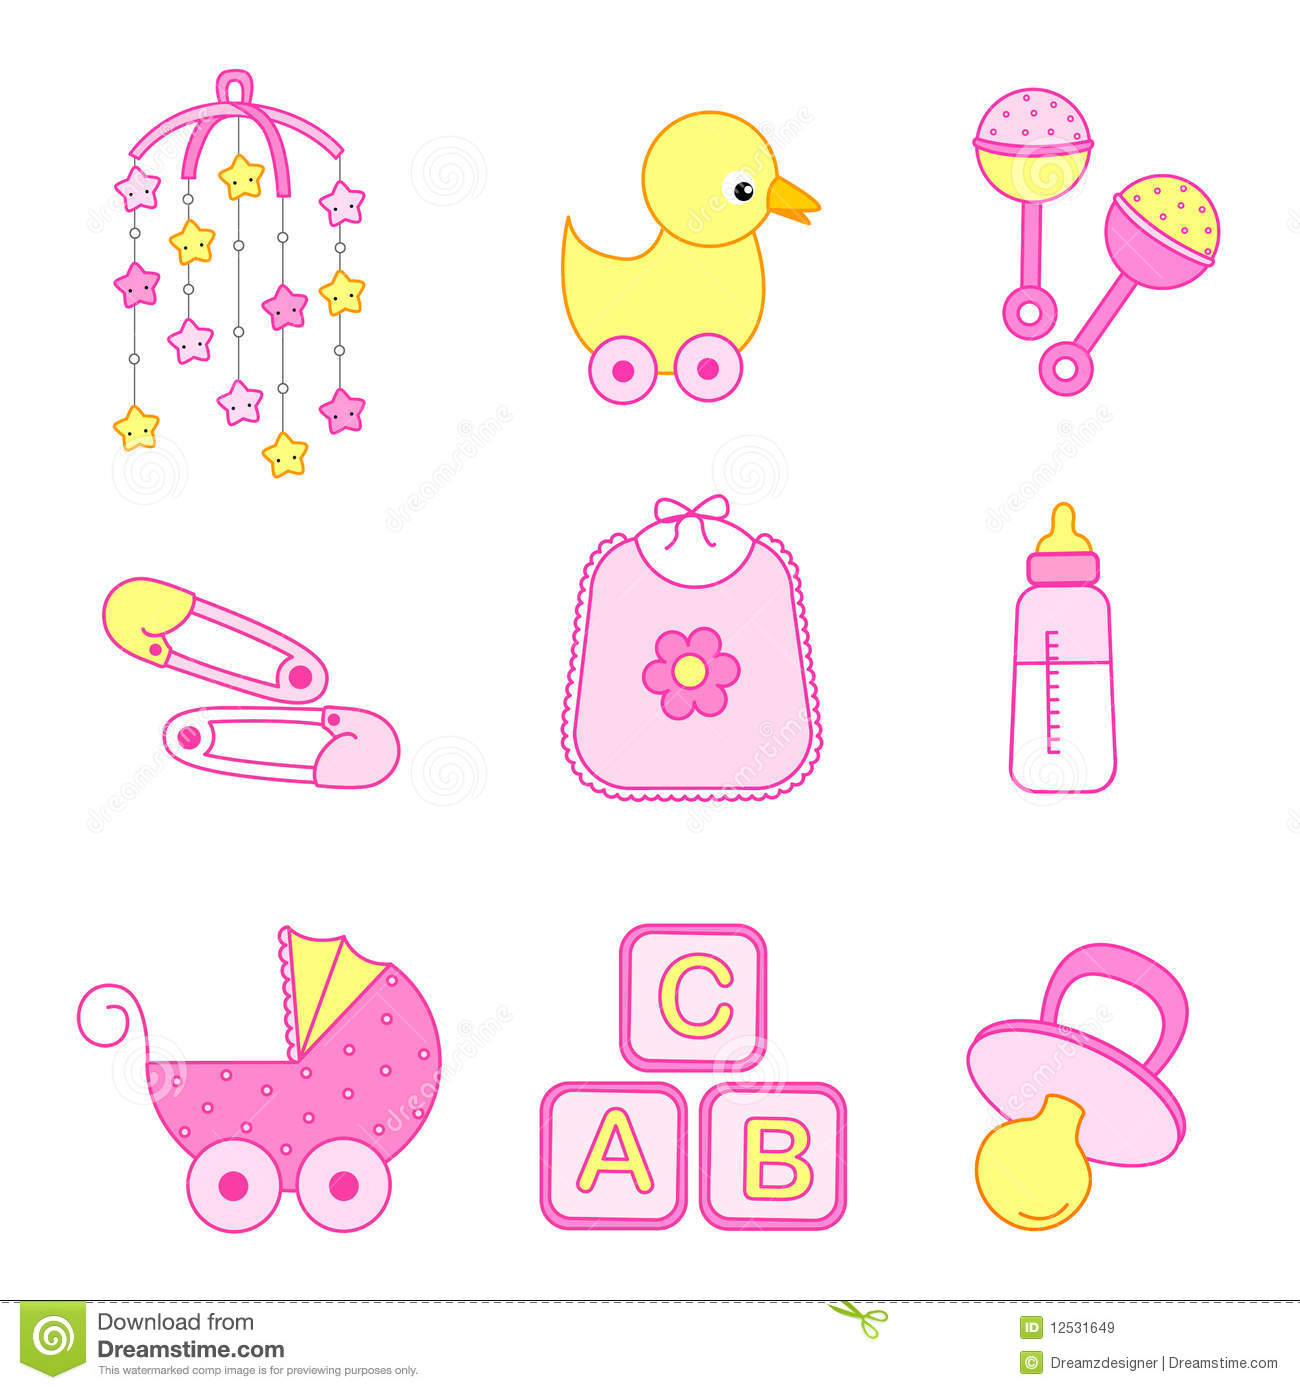 Sweet twins royalty free stock photo image 10320675 - Baby Girl Accessories Royalty Free Stock Images